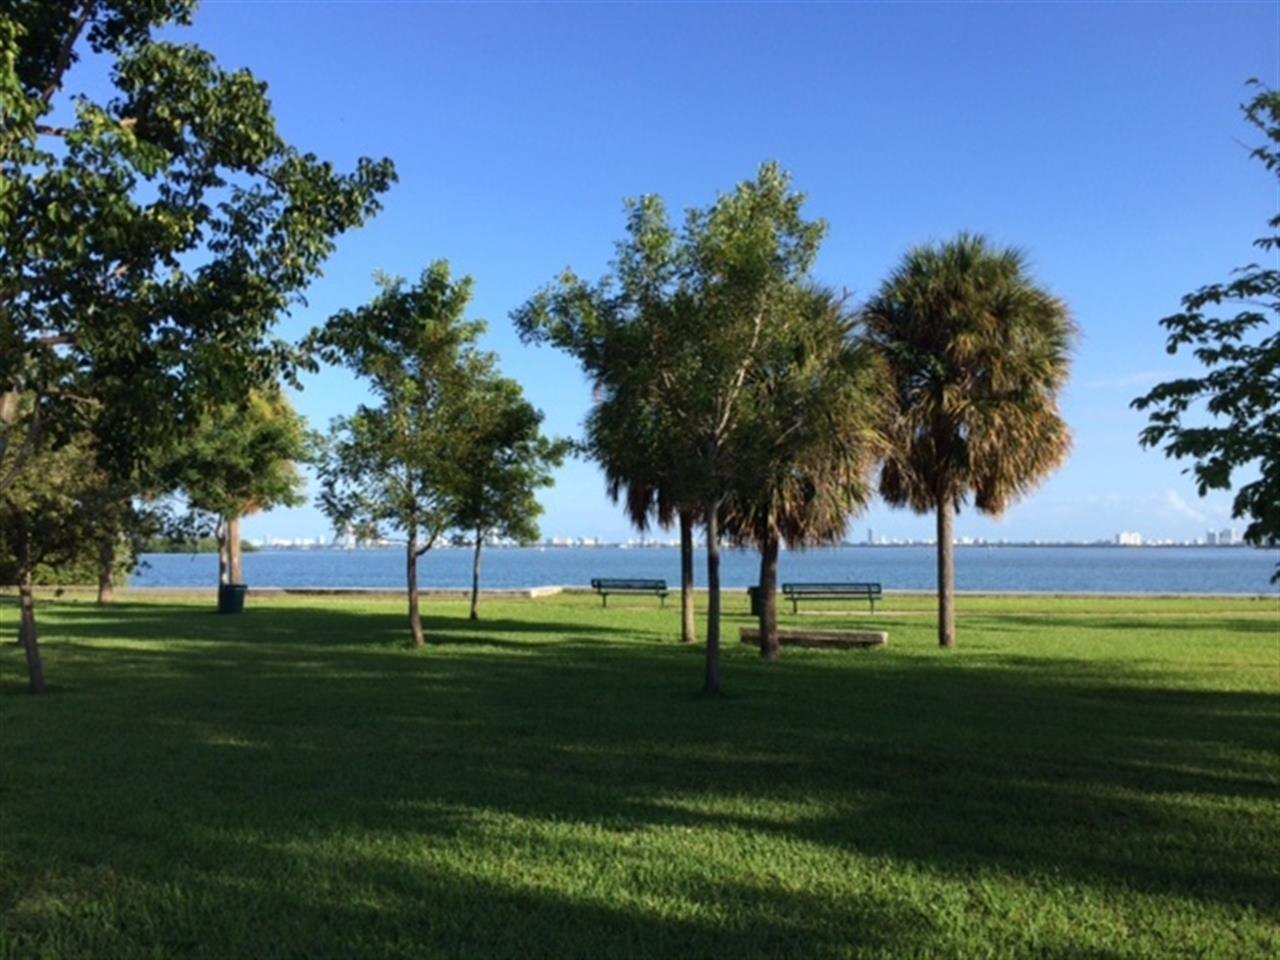 Biscayne Bay from the Park on 69th